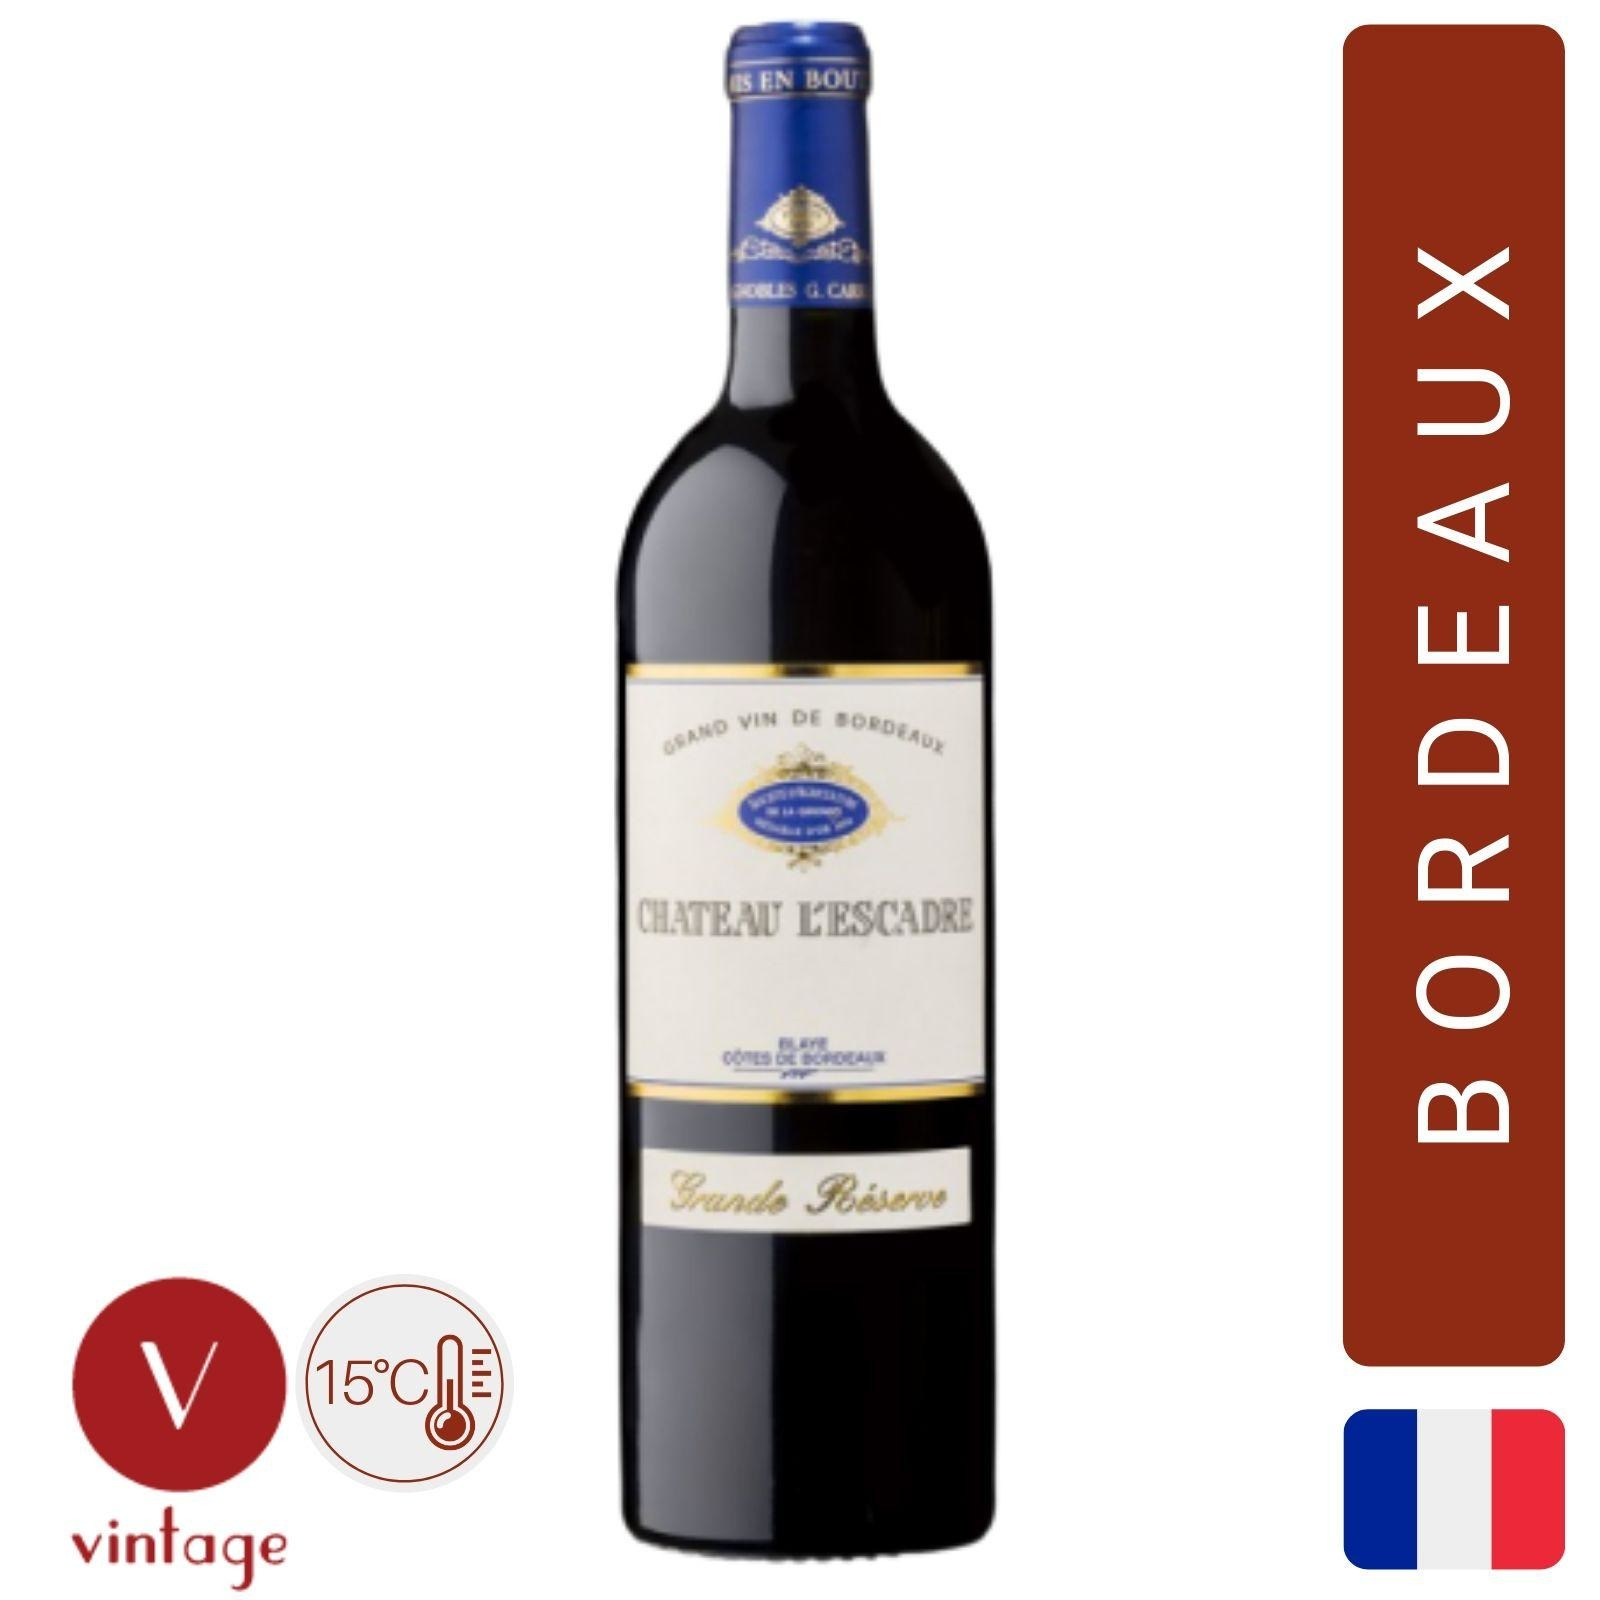 Chateau l'Escadre Grande Reserve - Bordeaux Red Wine